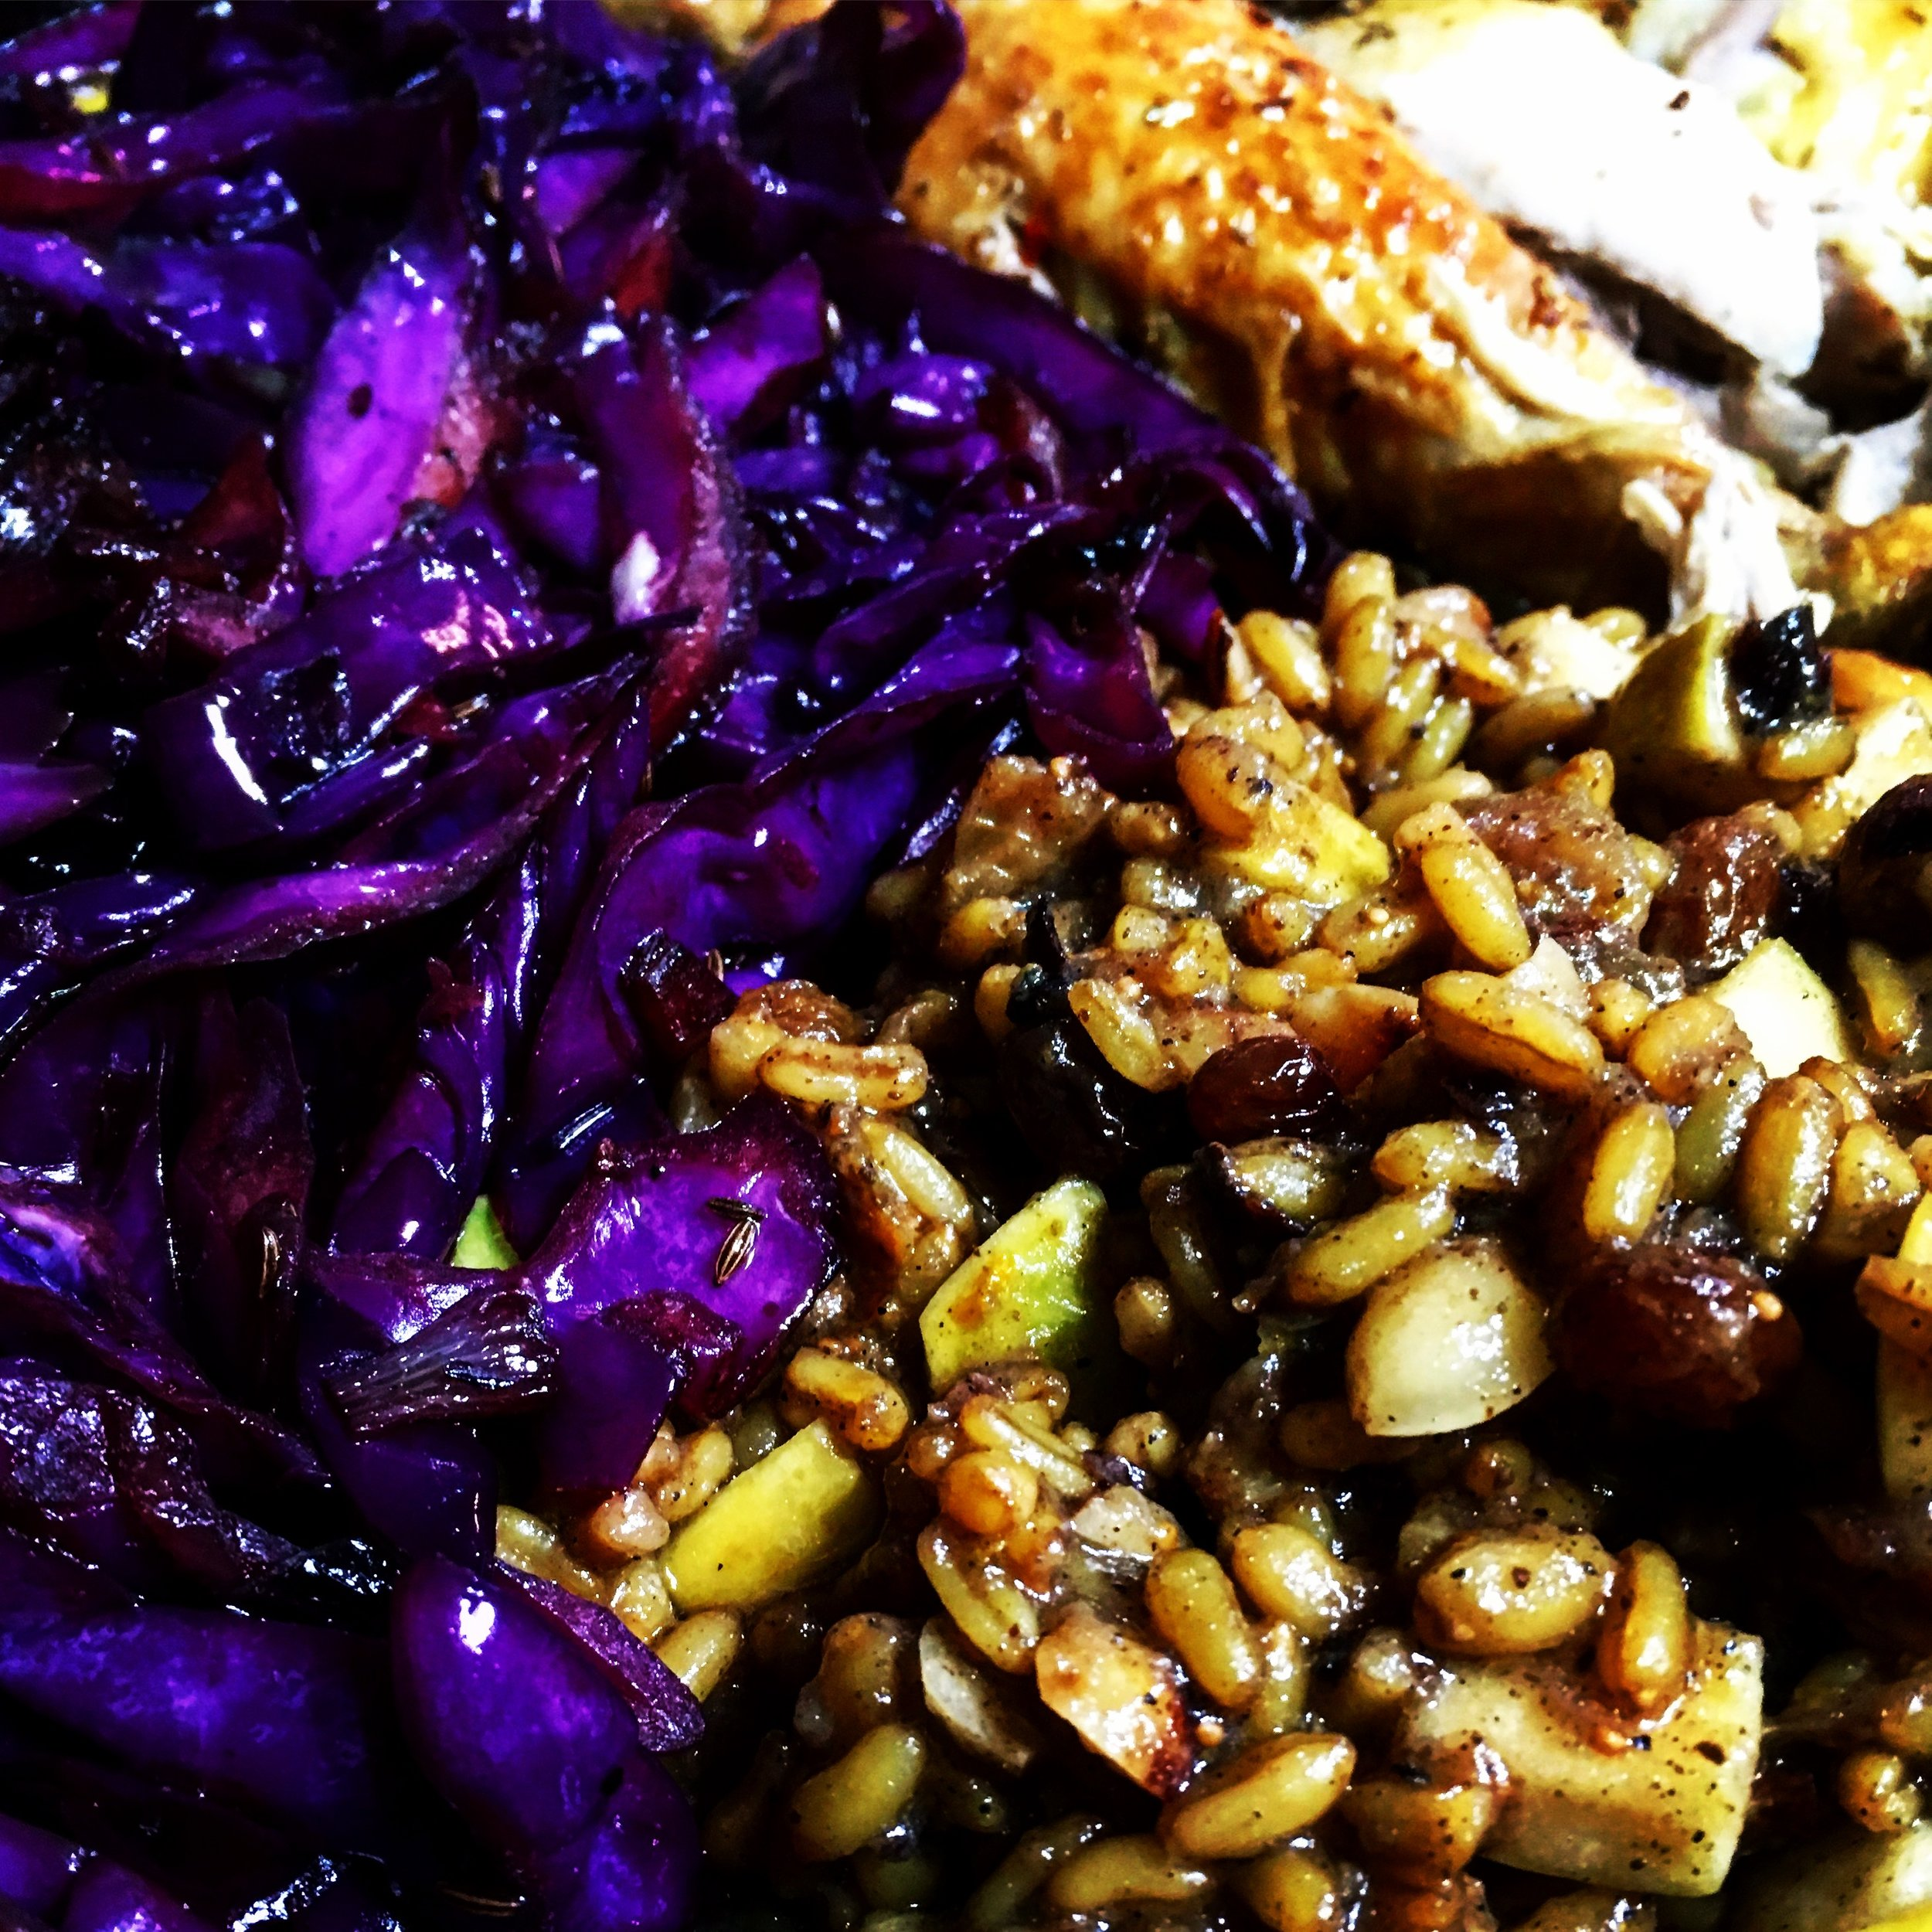 Roast Chicken, Sweet & Savory Farro, Skillet Cabbage